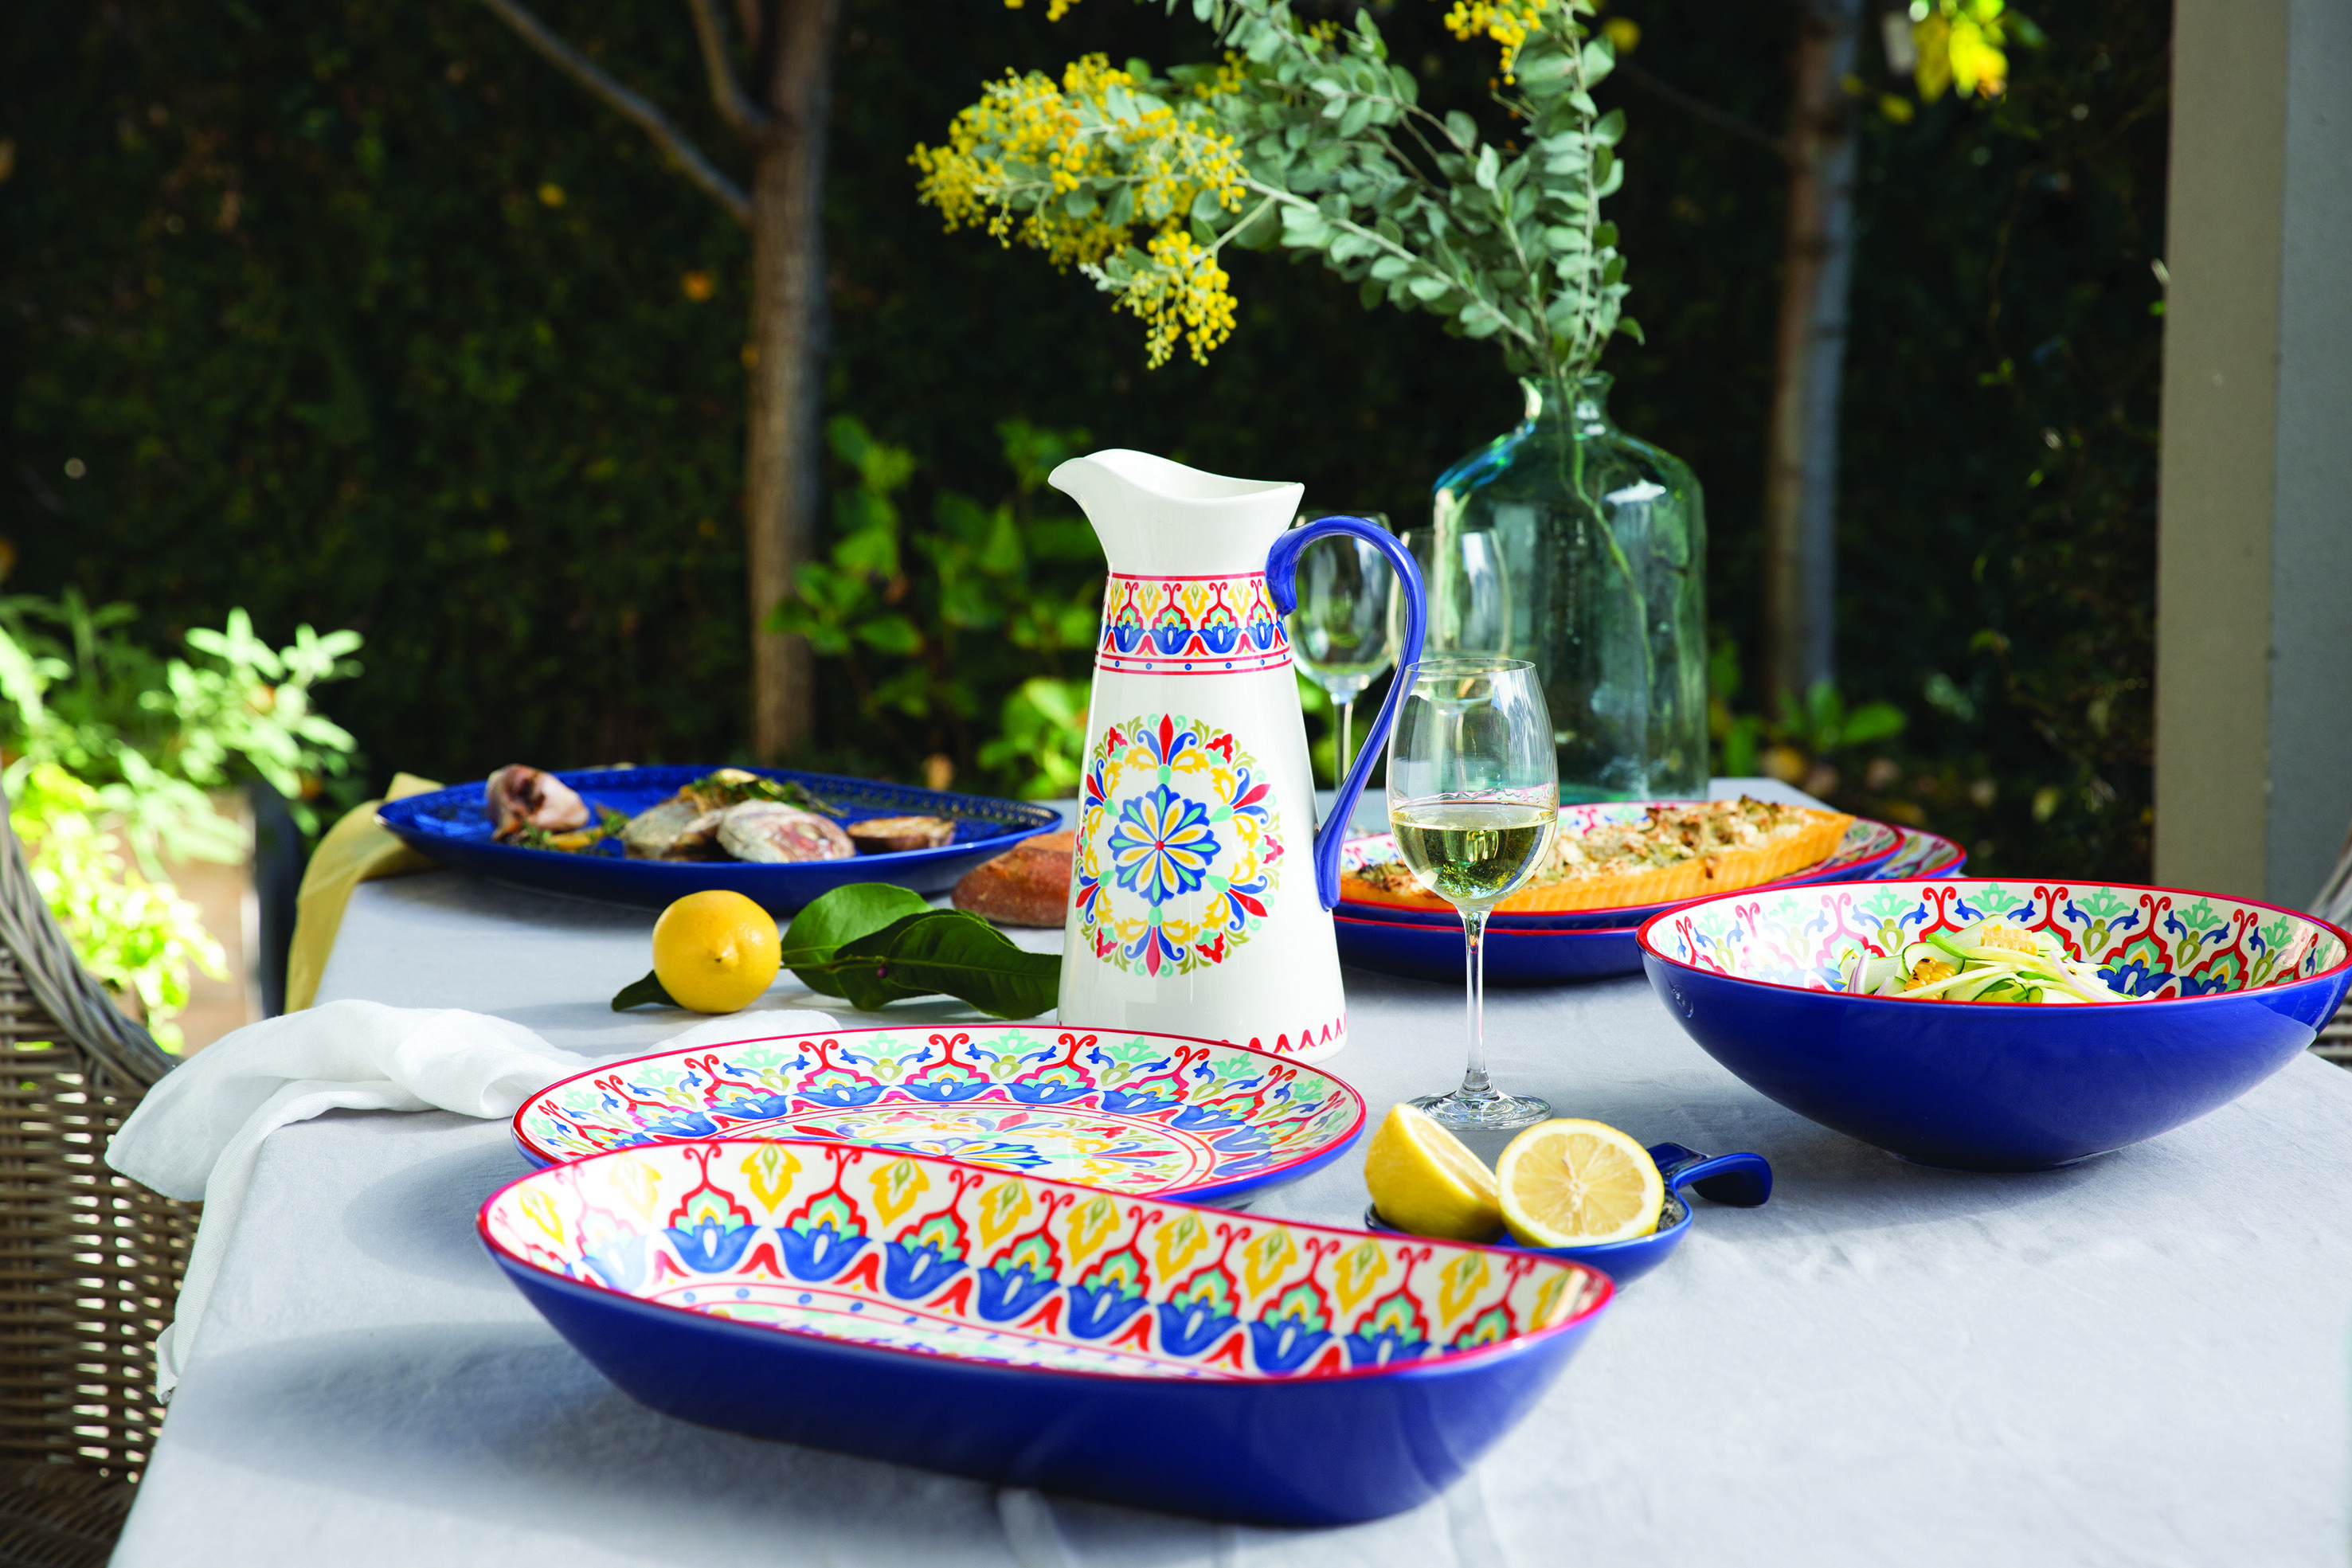 The Lanka collection is inspired by traditional Mediterranean tableware #maxwellandwilliams #lanka #serveware # & The Lanka collection is inspired by traditional Mediterranean ...